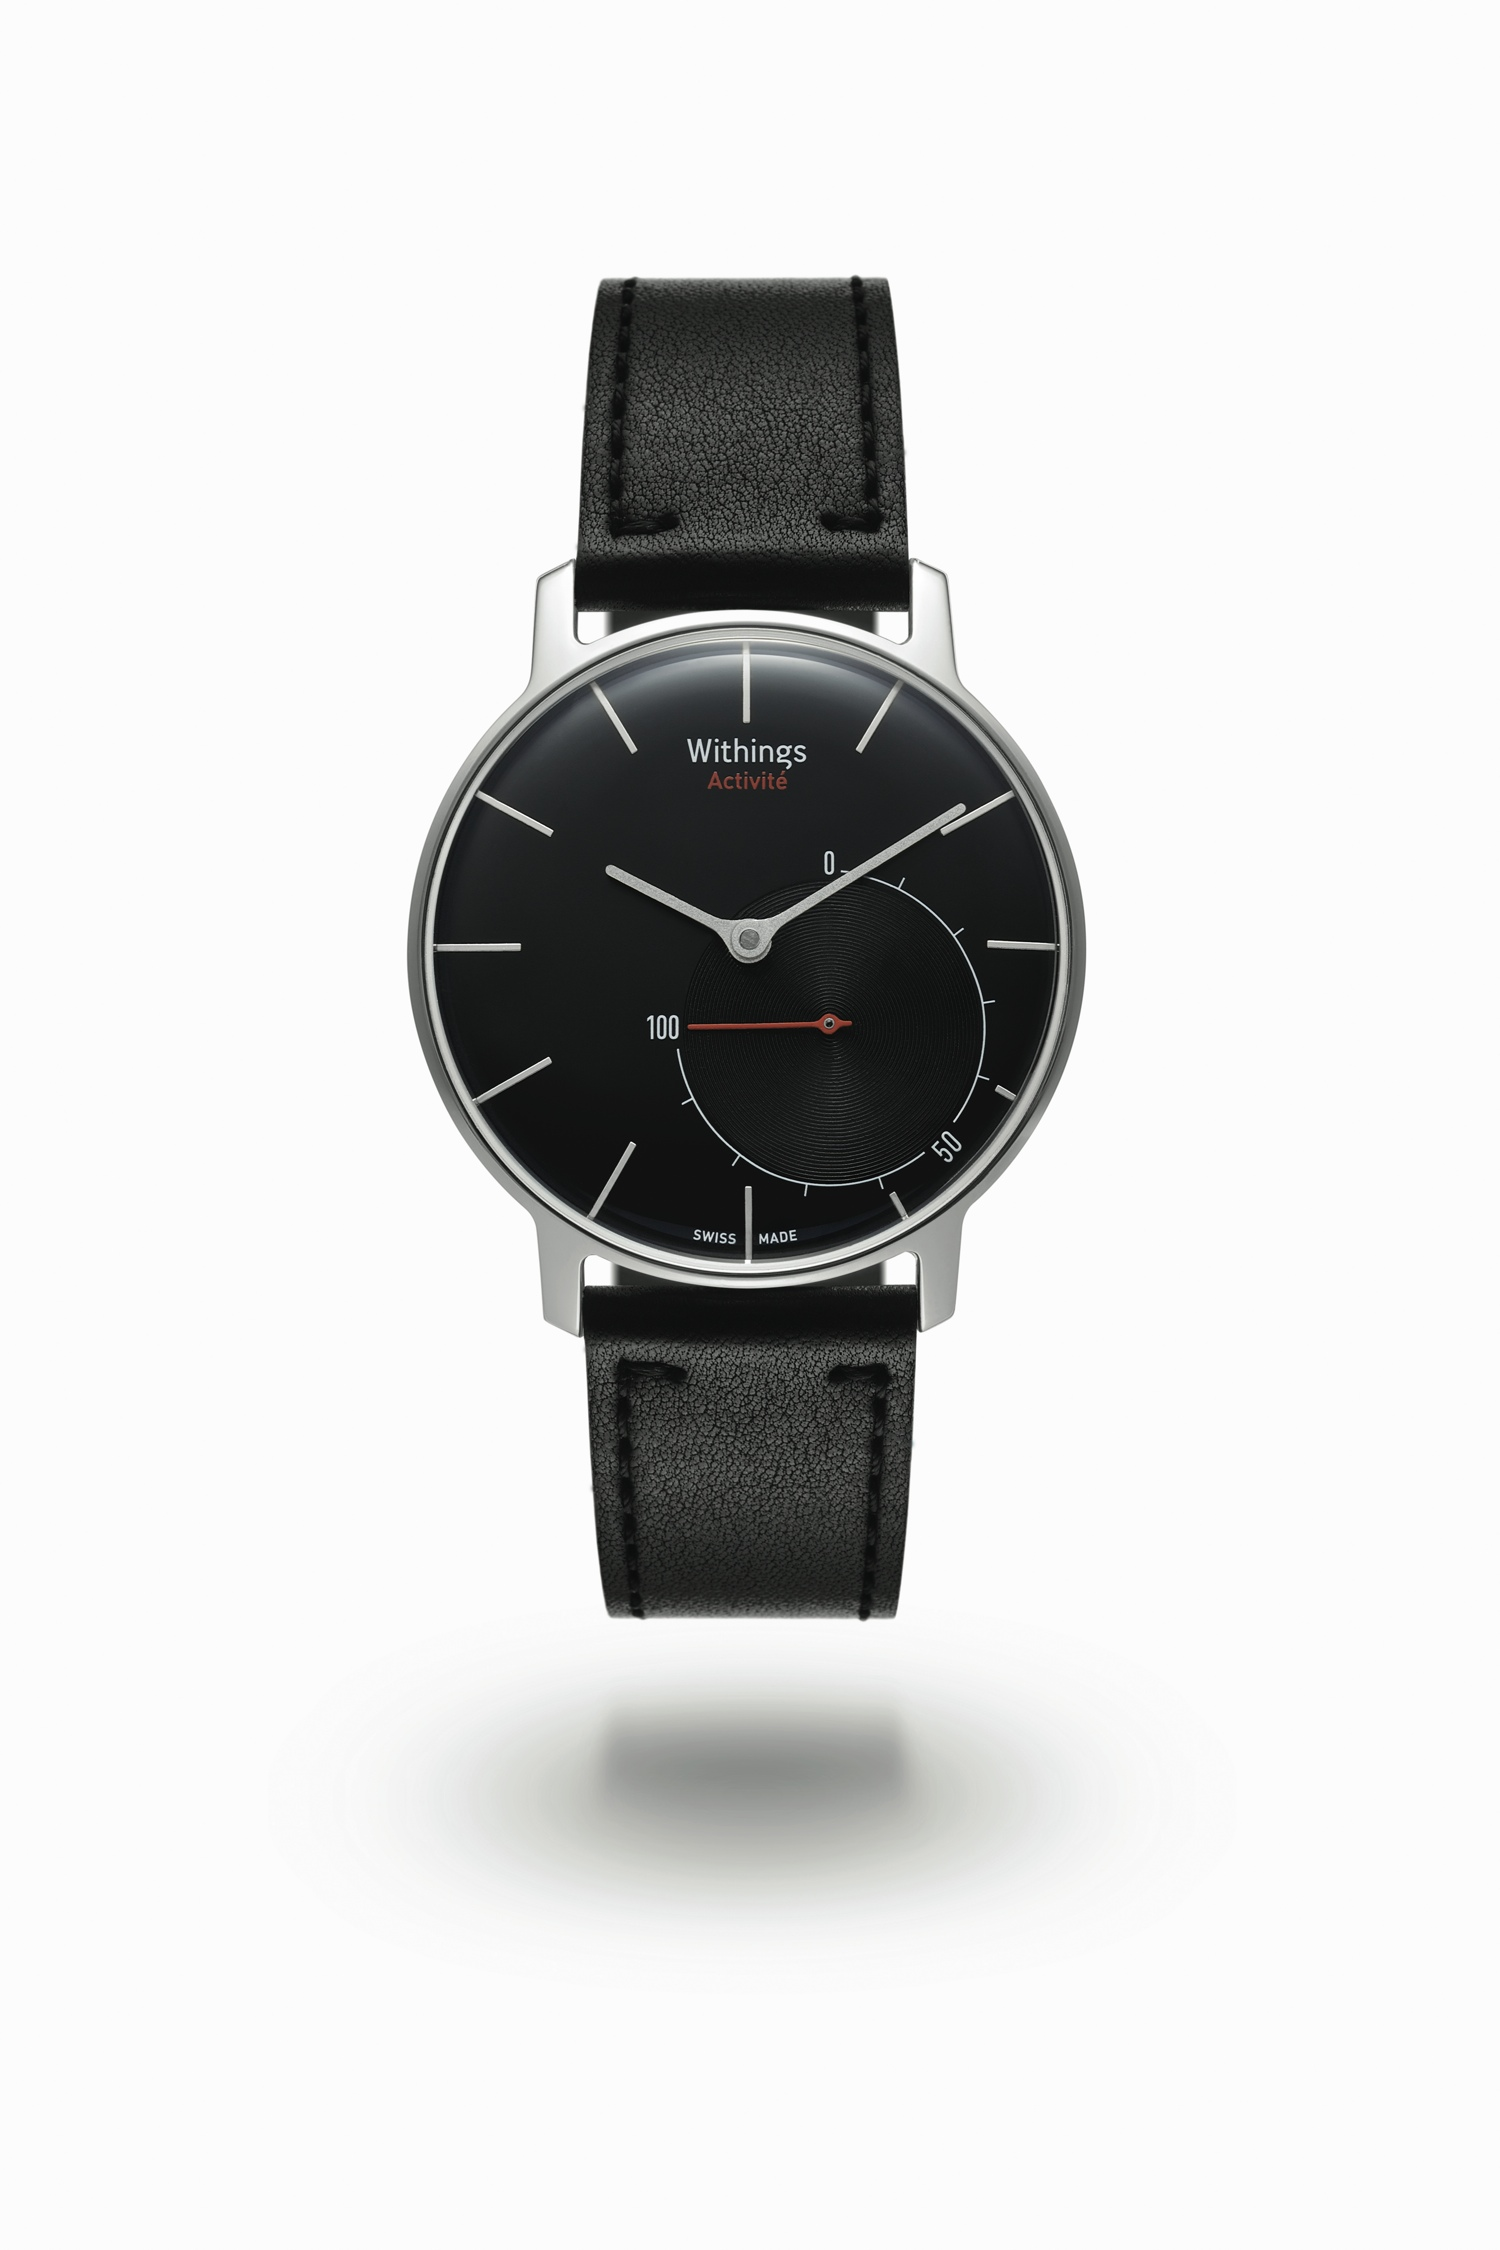 withings-activite-fitness-watch-3